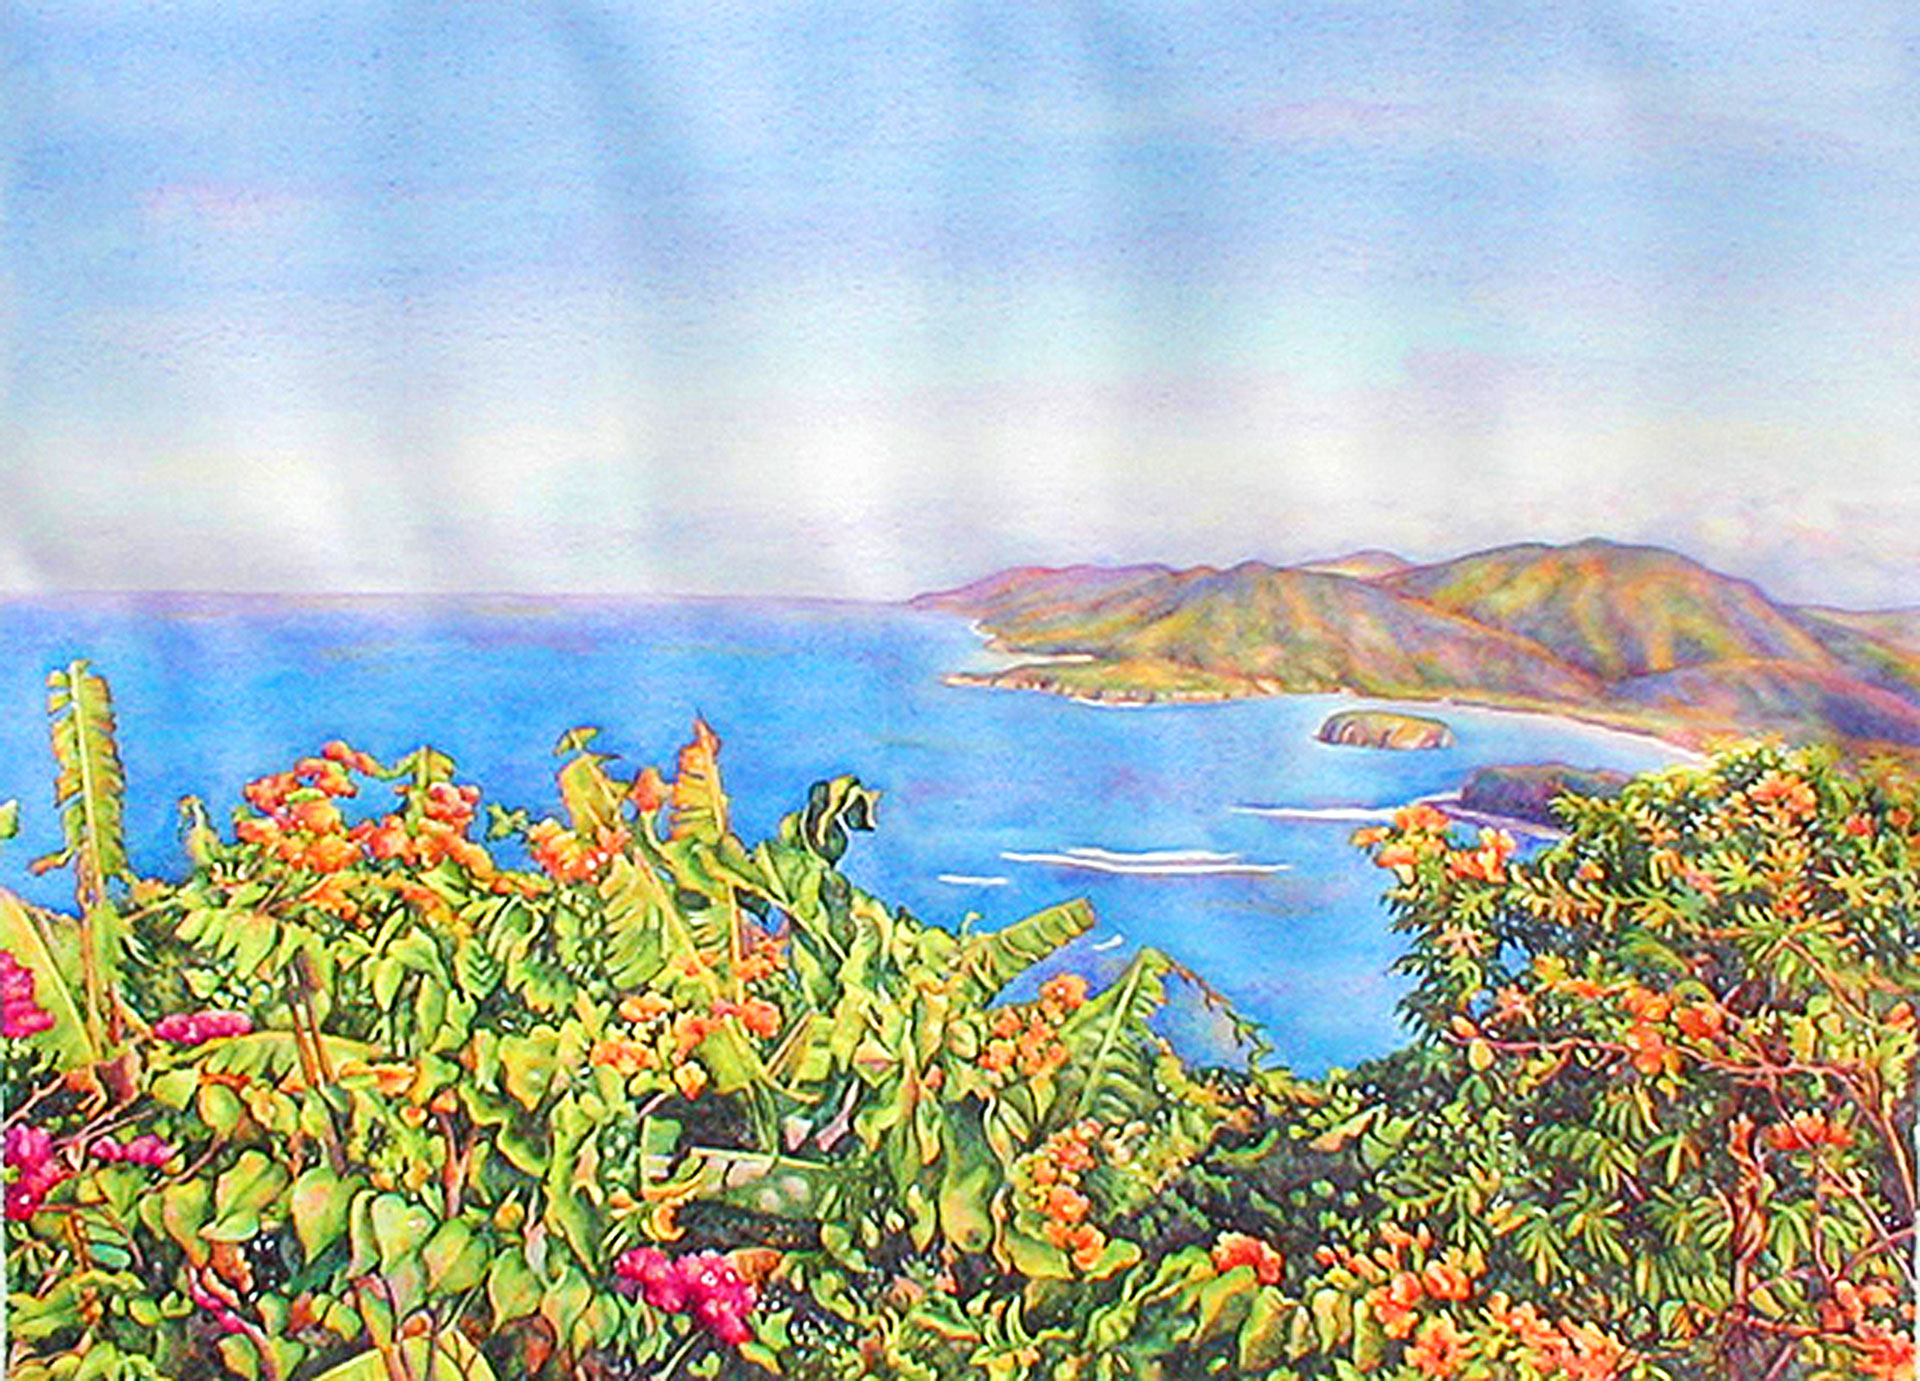 """Limited edition giclee print on watercolor paper: 20"""" x 15 ¾"""" - $225; USD 12"""" x 9 3/8"""" - $135 USD"""